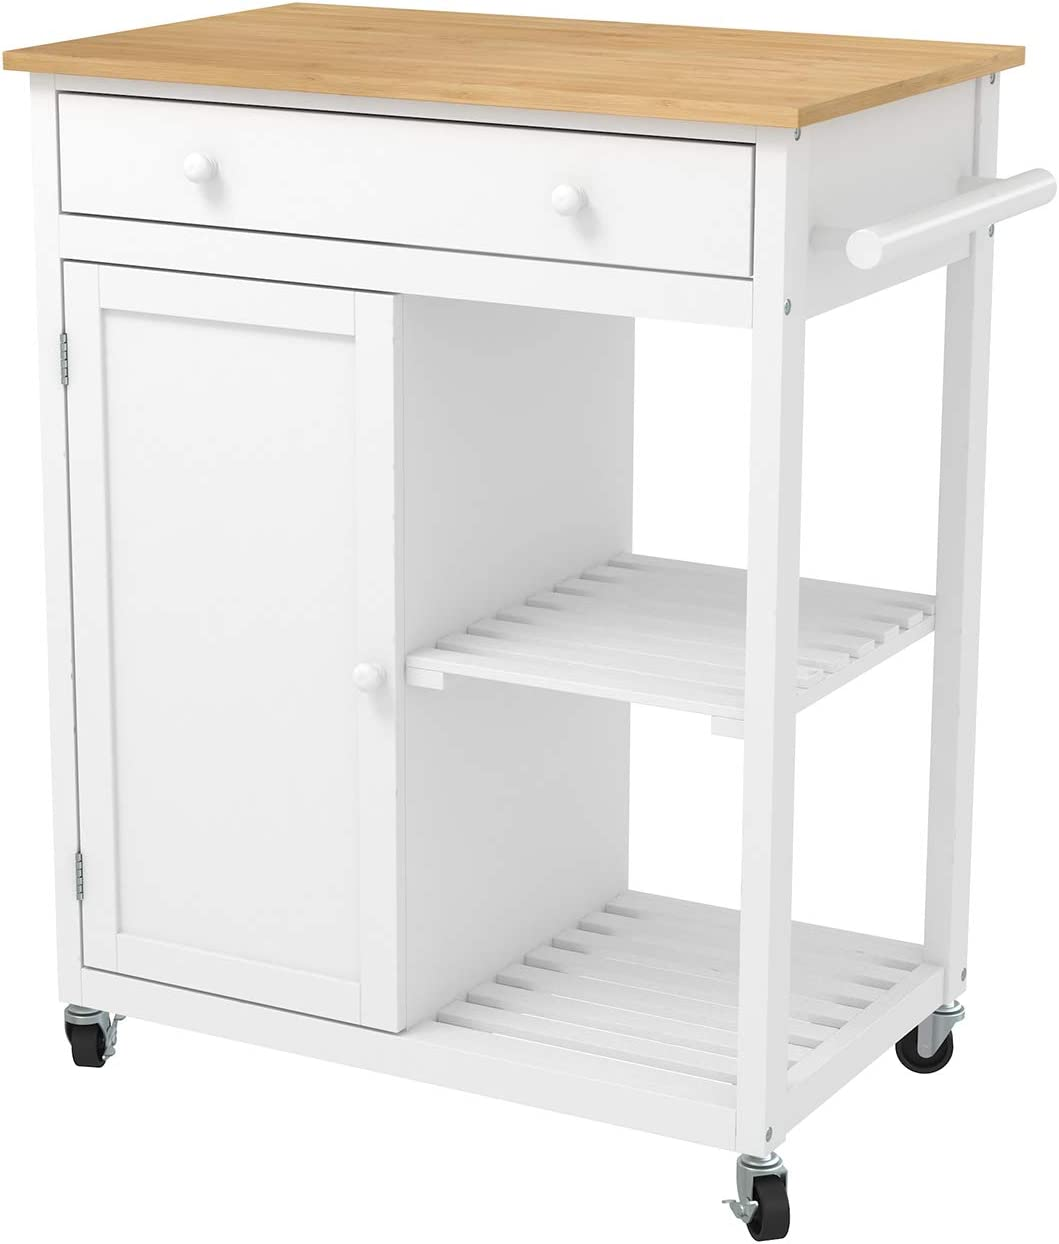 Mecor Kitchen Island Cart w/Wood Top, Rolling Utility Trolley on Wheels with Storage Drawer, Shelves and Cabinet (White)